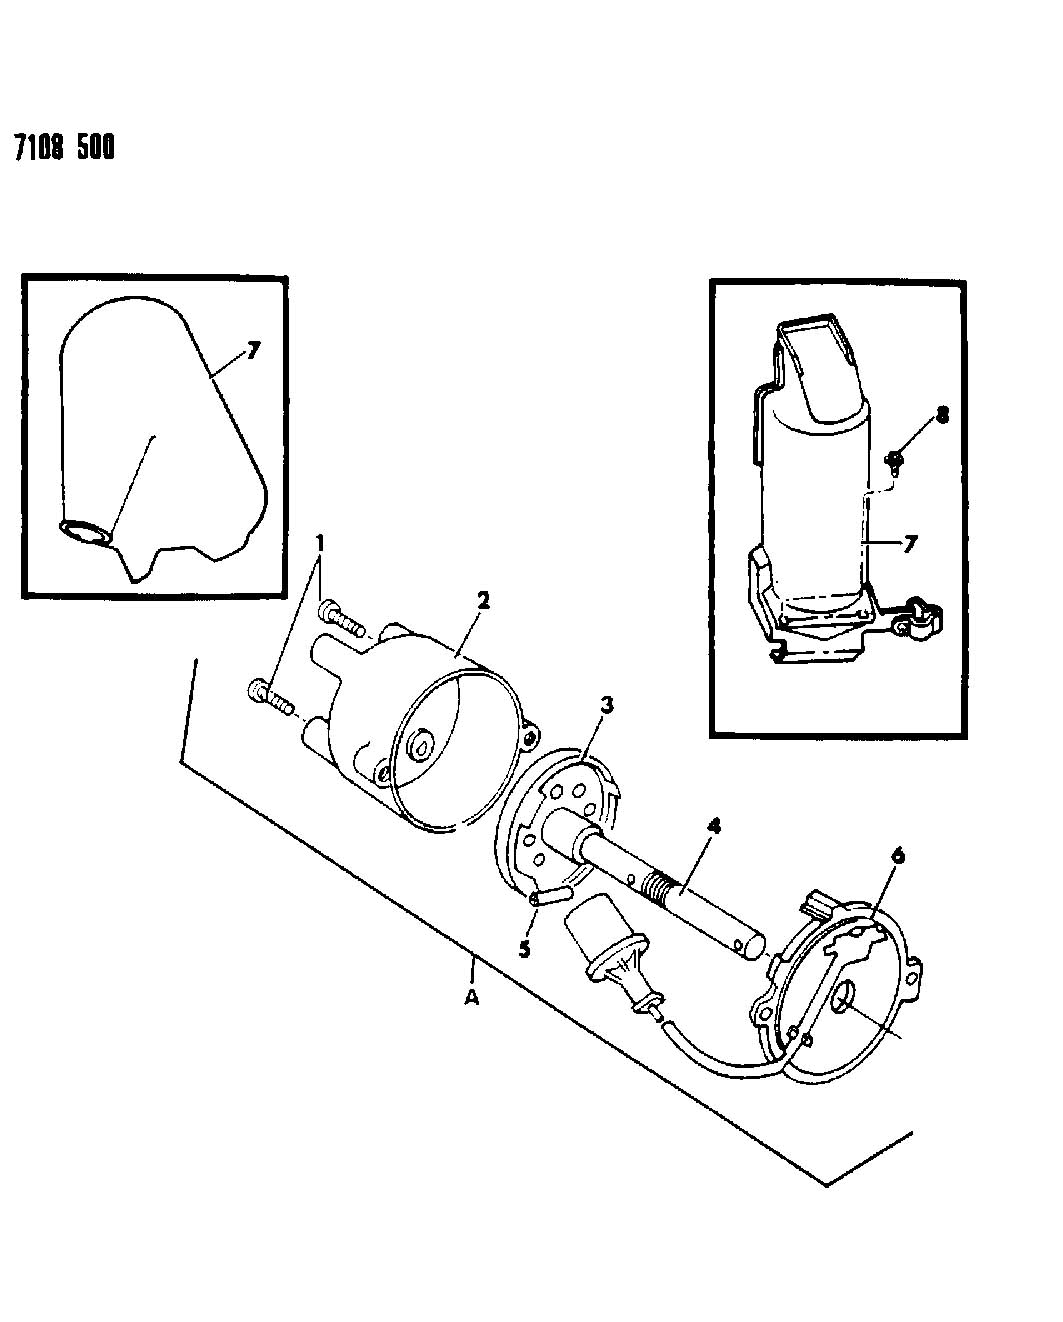 1990 Chrysler New Yorker Engine Diagram also Dodge 2 0 Engine Diagram additionally P 0900c152802514de additionally Chrysler Neon 2 0 1995 Specs And Images furthermore P 0900c15280268874. on 1986 chrysler lebaron